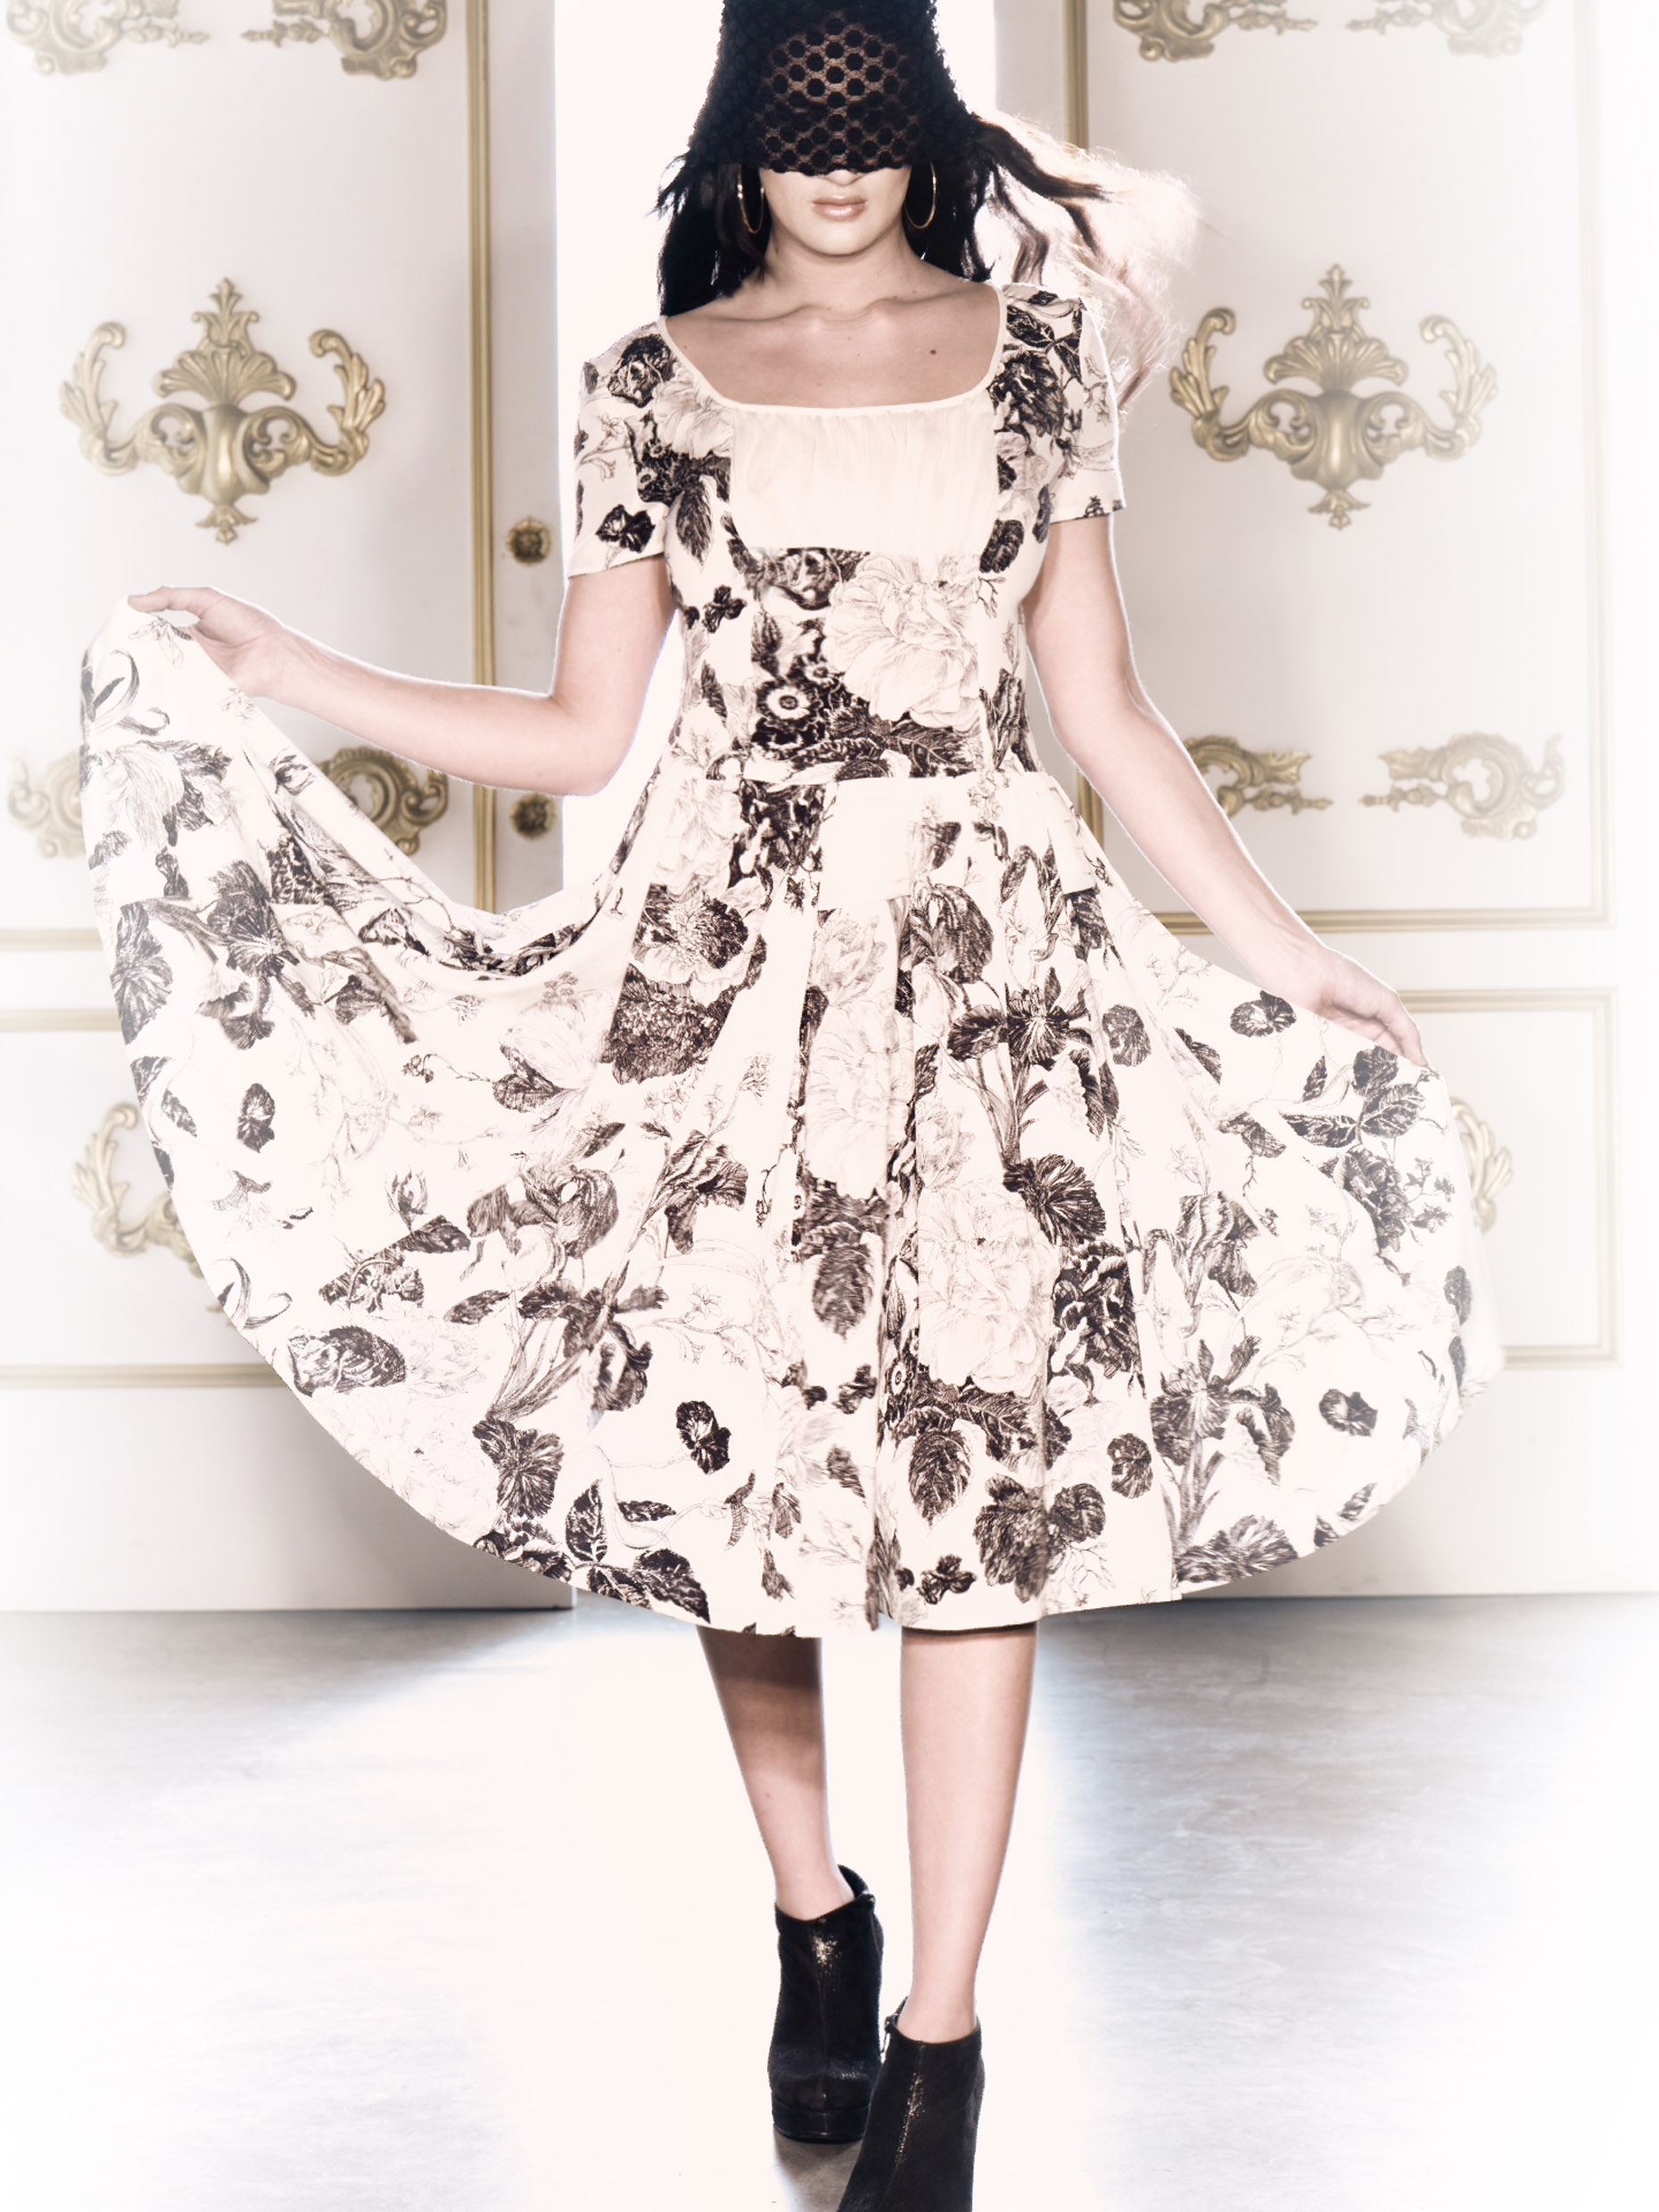 _27cremeblackfloraldress0621